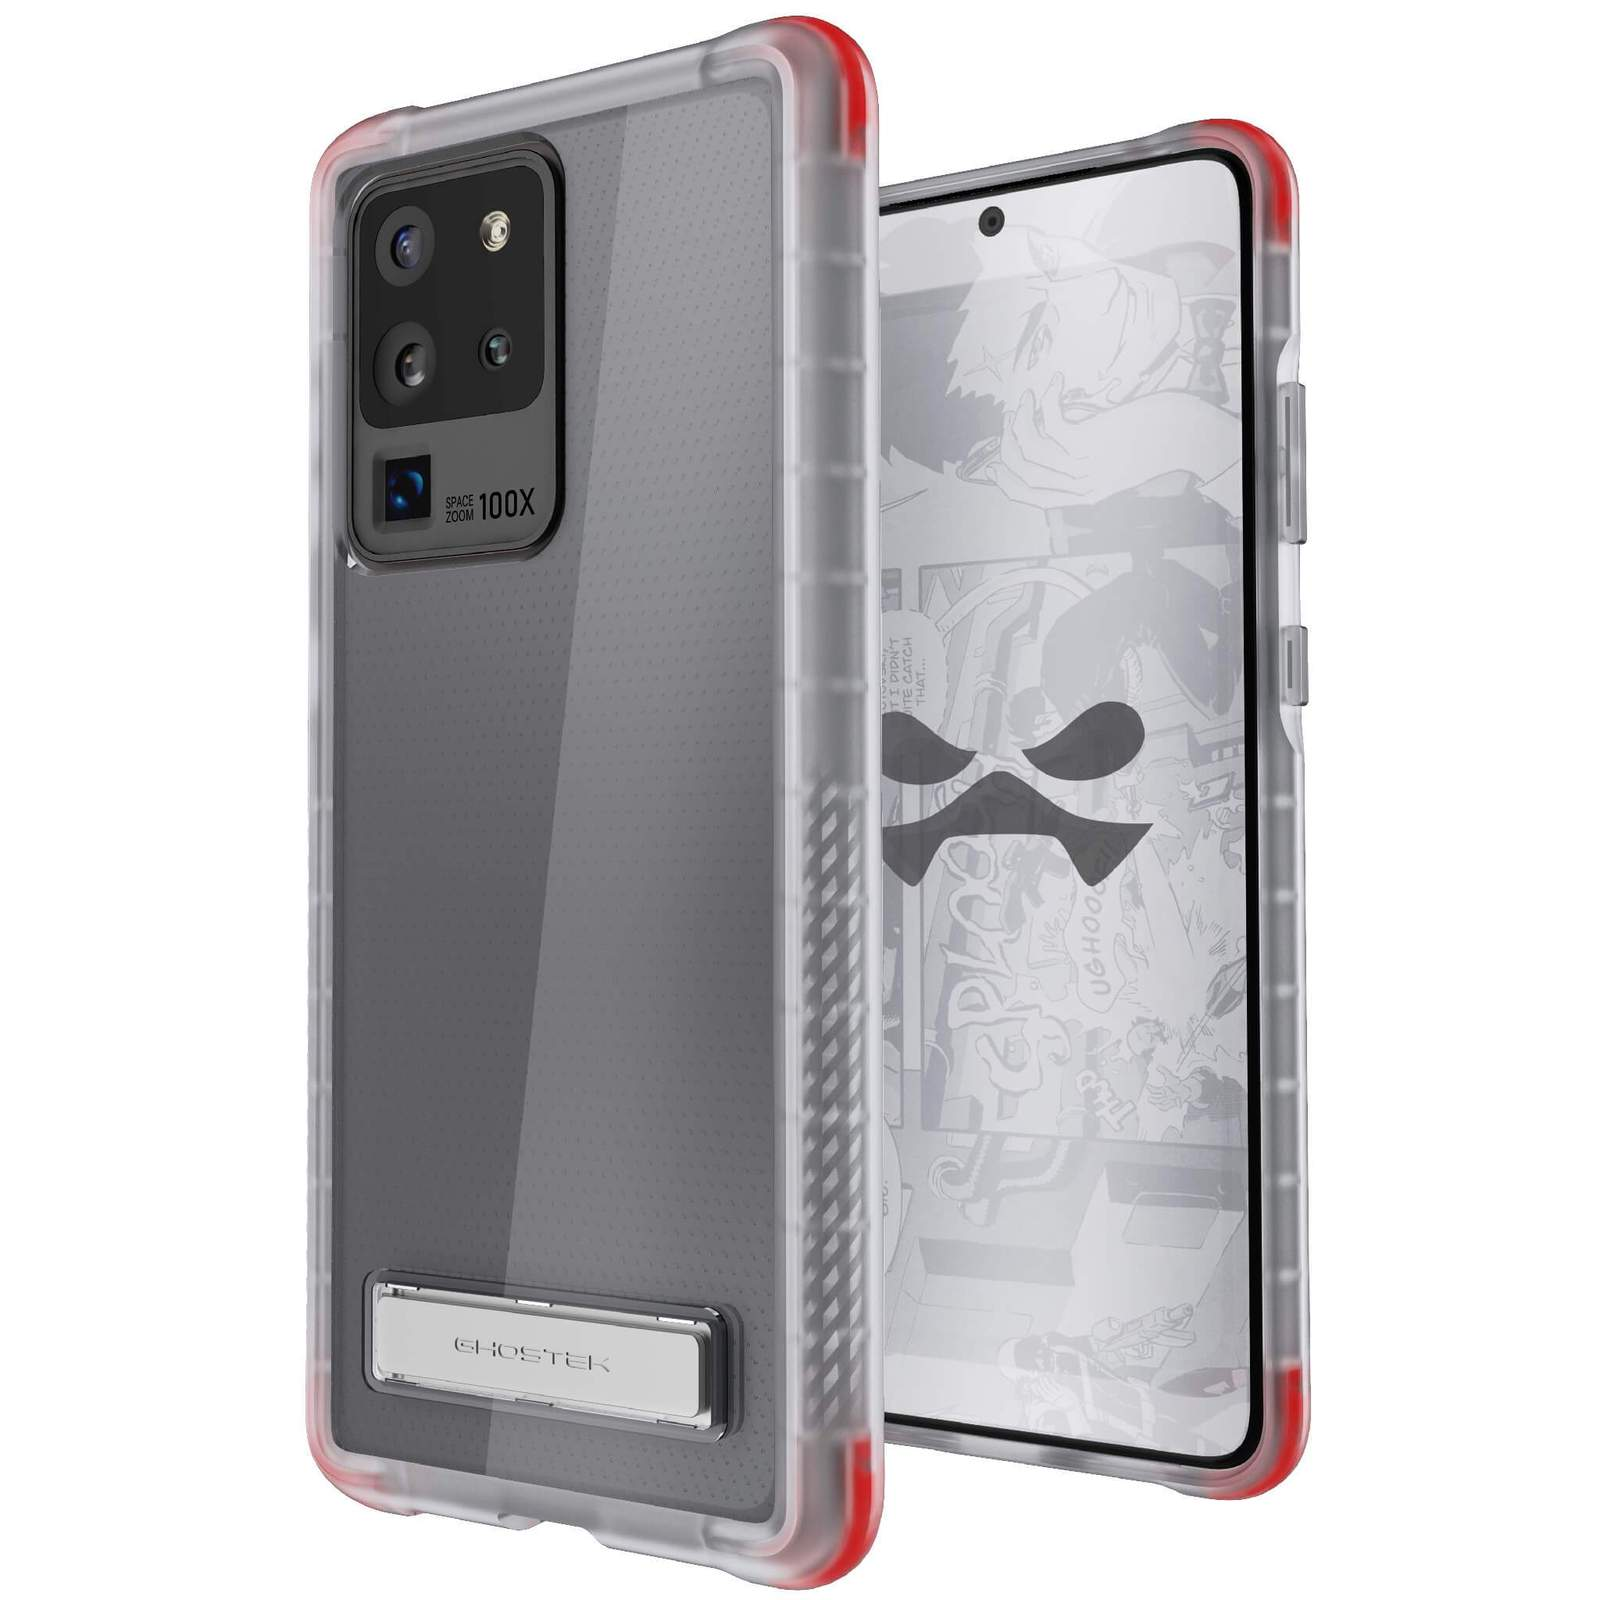 Galaxy S20 Ultra Case — COVERT [Clear]